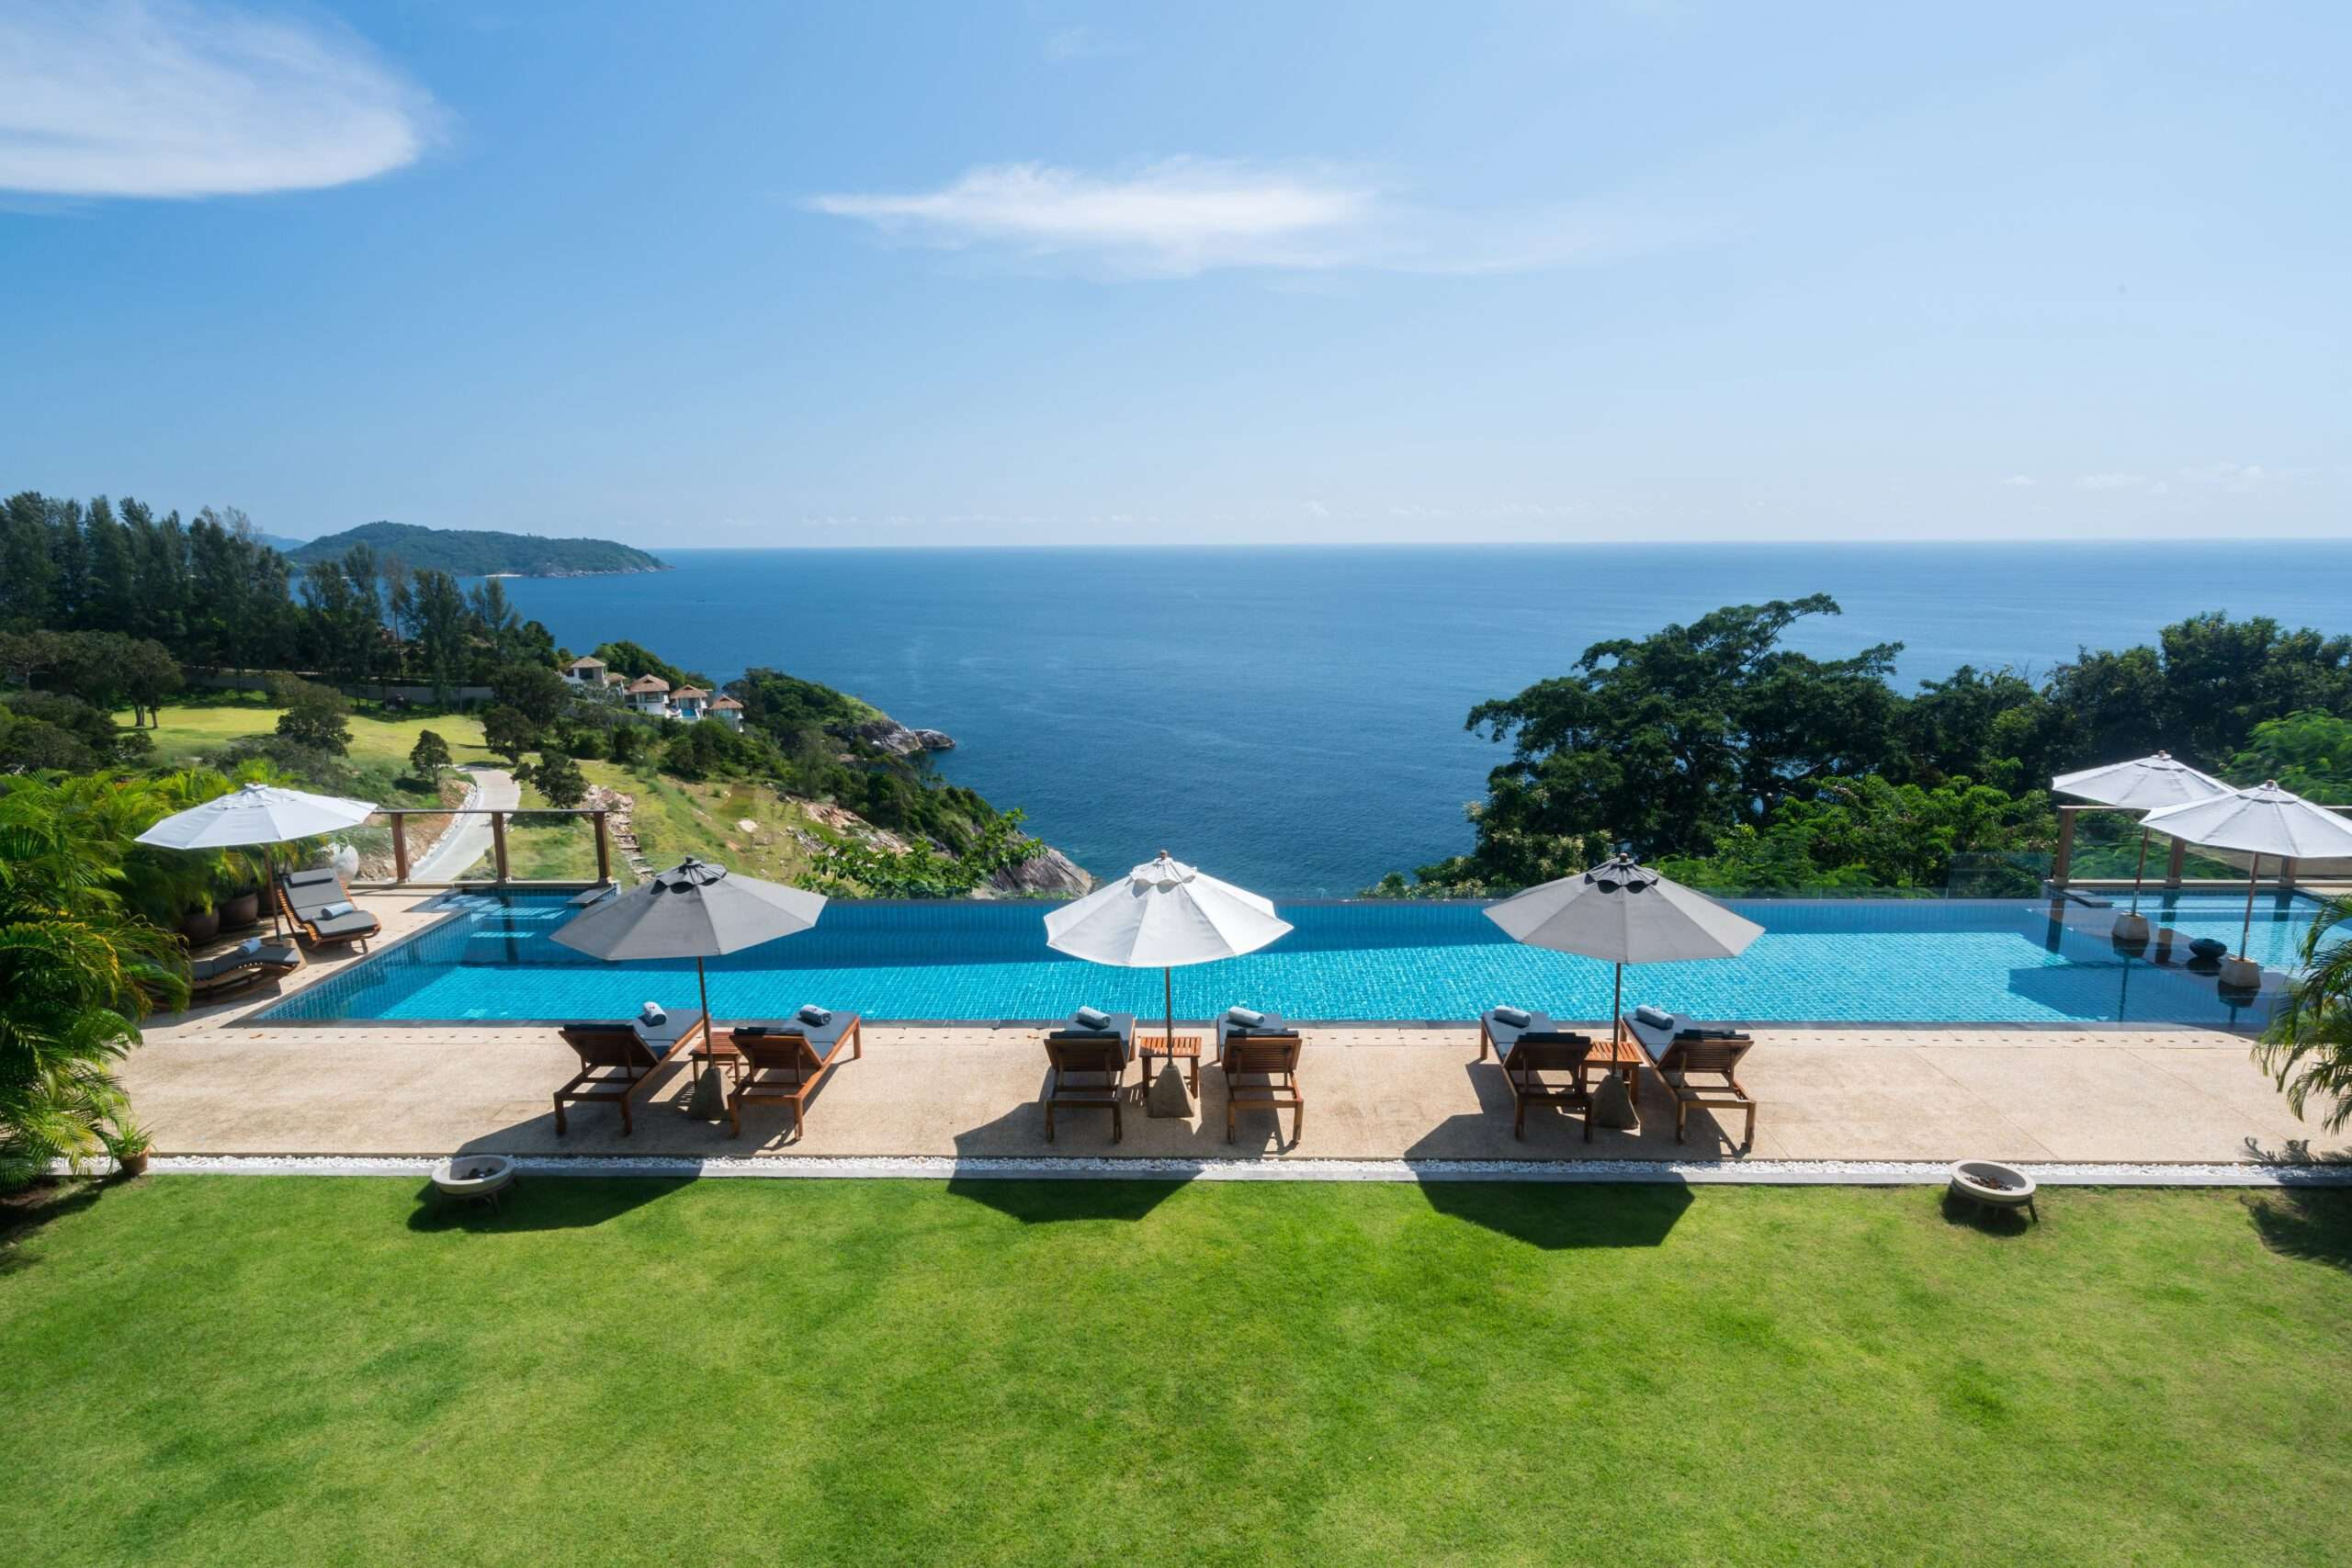 Lawn and swimming pool at Villa Aye in Phuket, Thailand